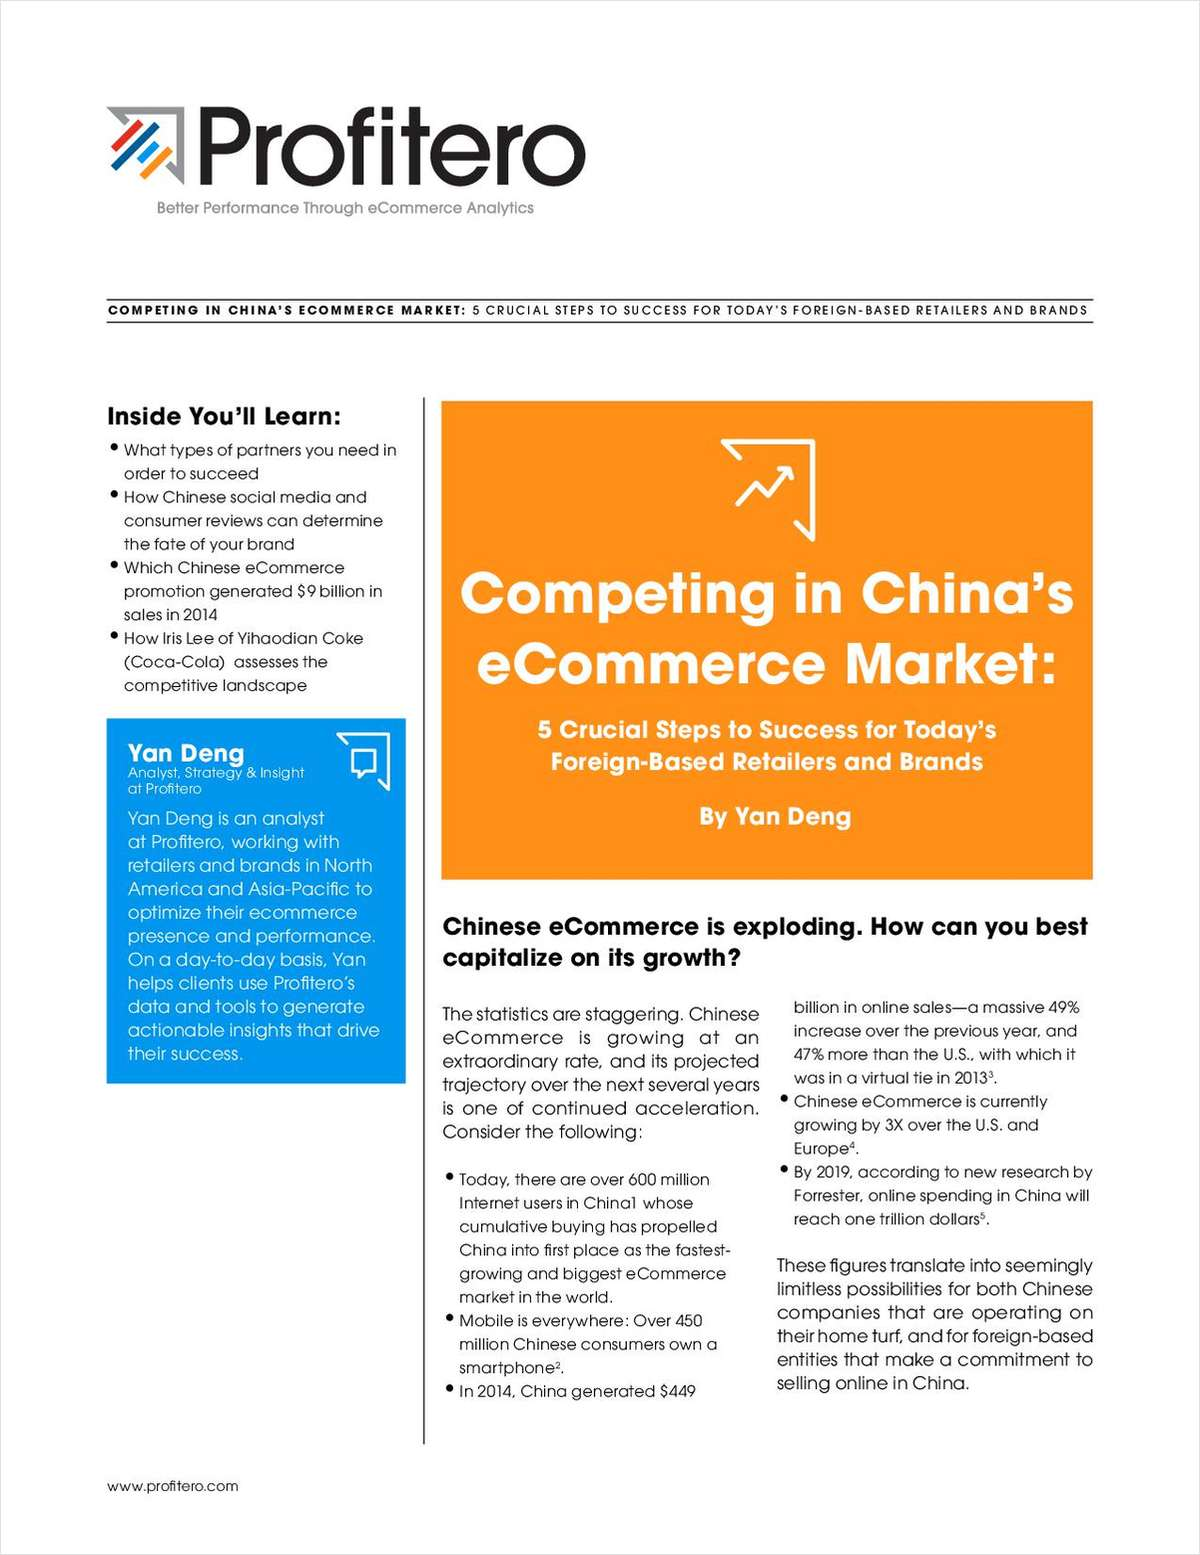 Competing in China's eCommerce Market